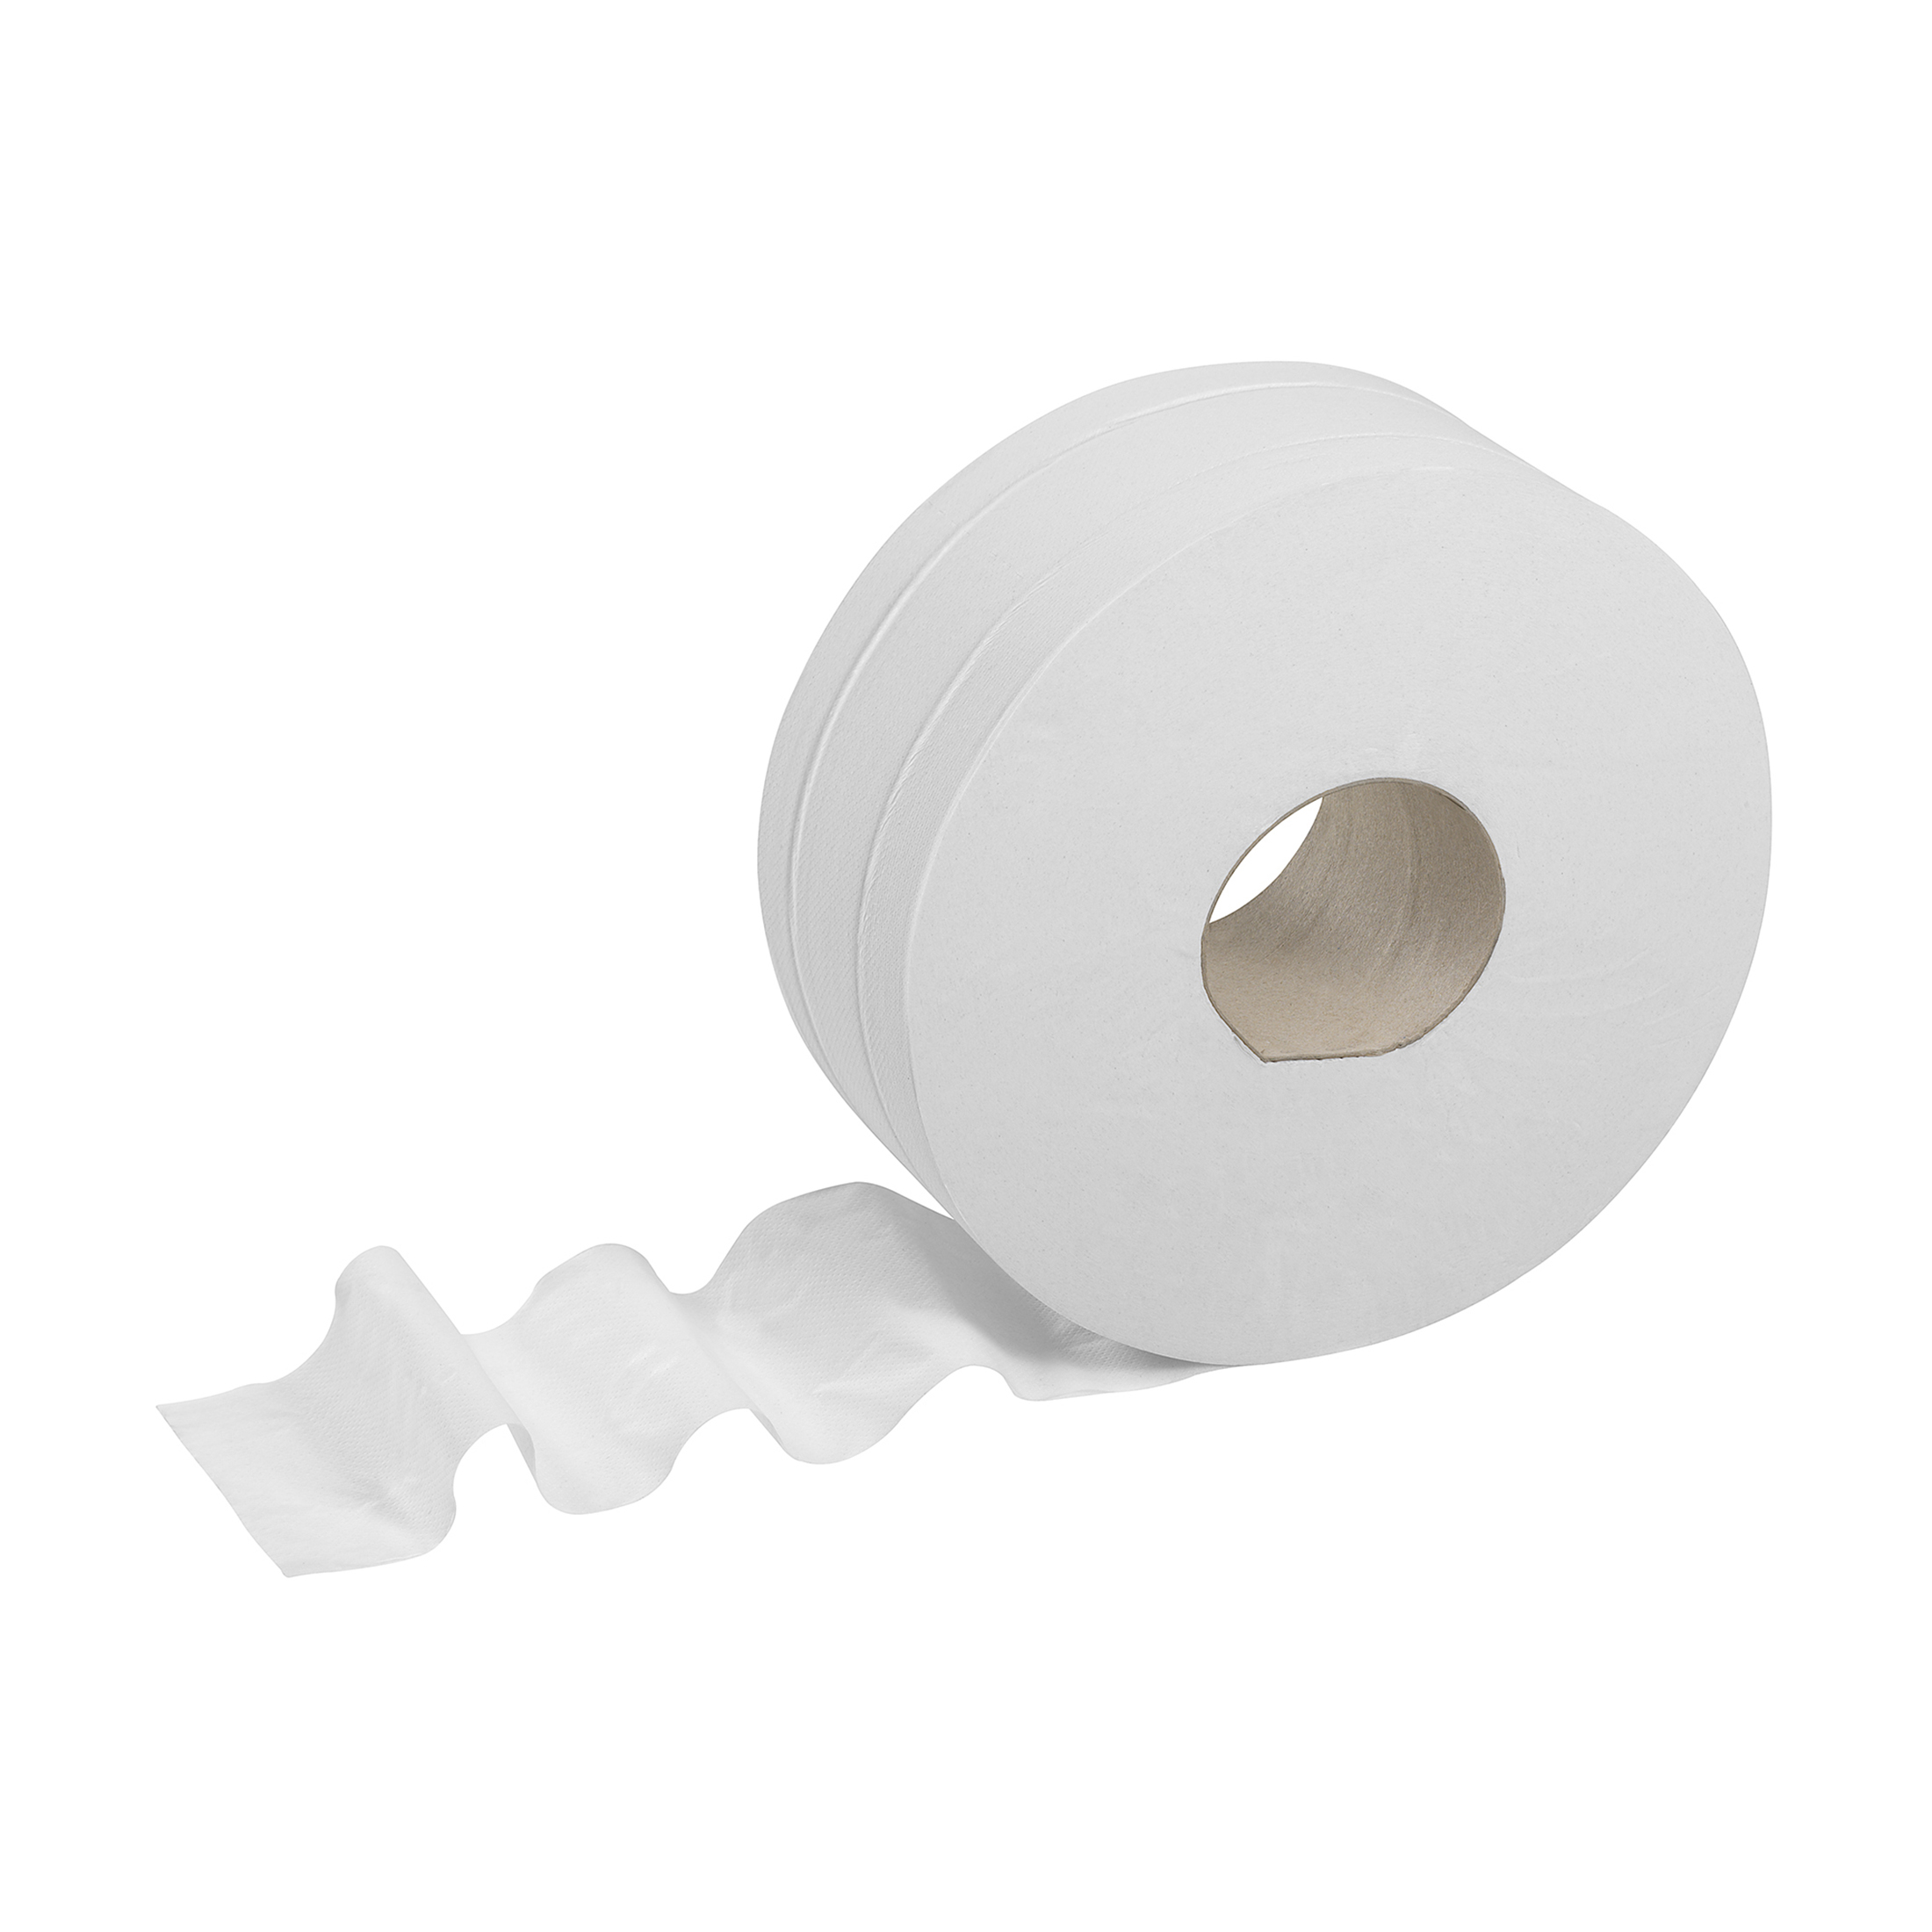 Toilet Tissue & Dispensers Kleenex Midi Jumbo Toilet Rolls 500 Sheet per roll 2-ply 380x90mm White Ref 8570 Pack 6